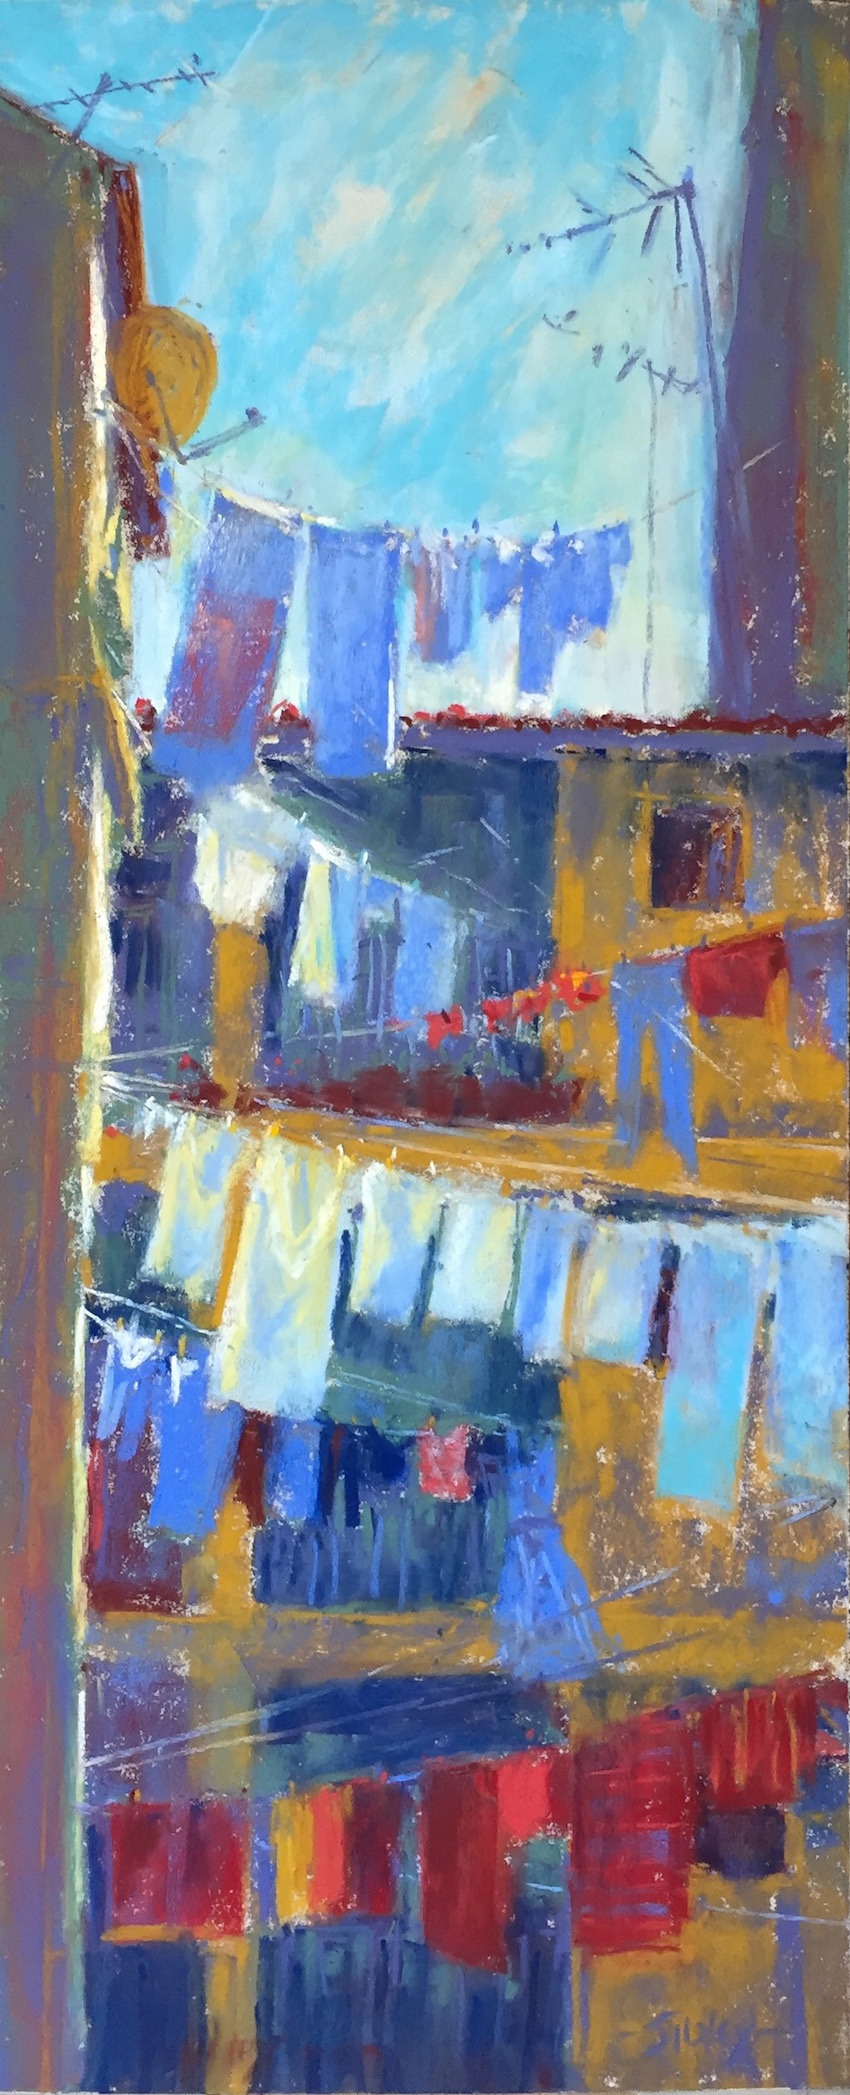 "Work in a series: Gail Sibley, ""Laundry Day in Pula,"" Unison pastels (from 36-piece starter set) on UART 400 grade paper, 18 x 7 1/2 in. Day 3."